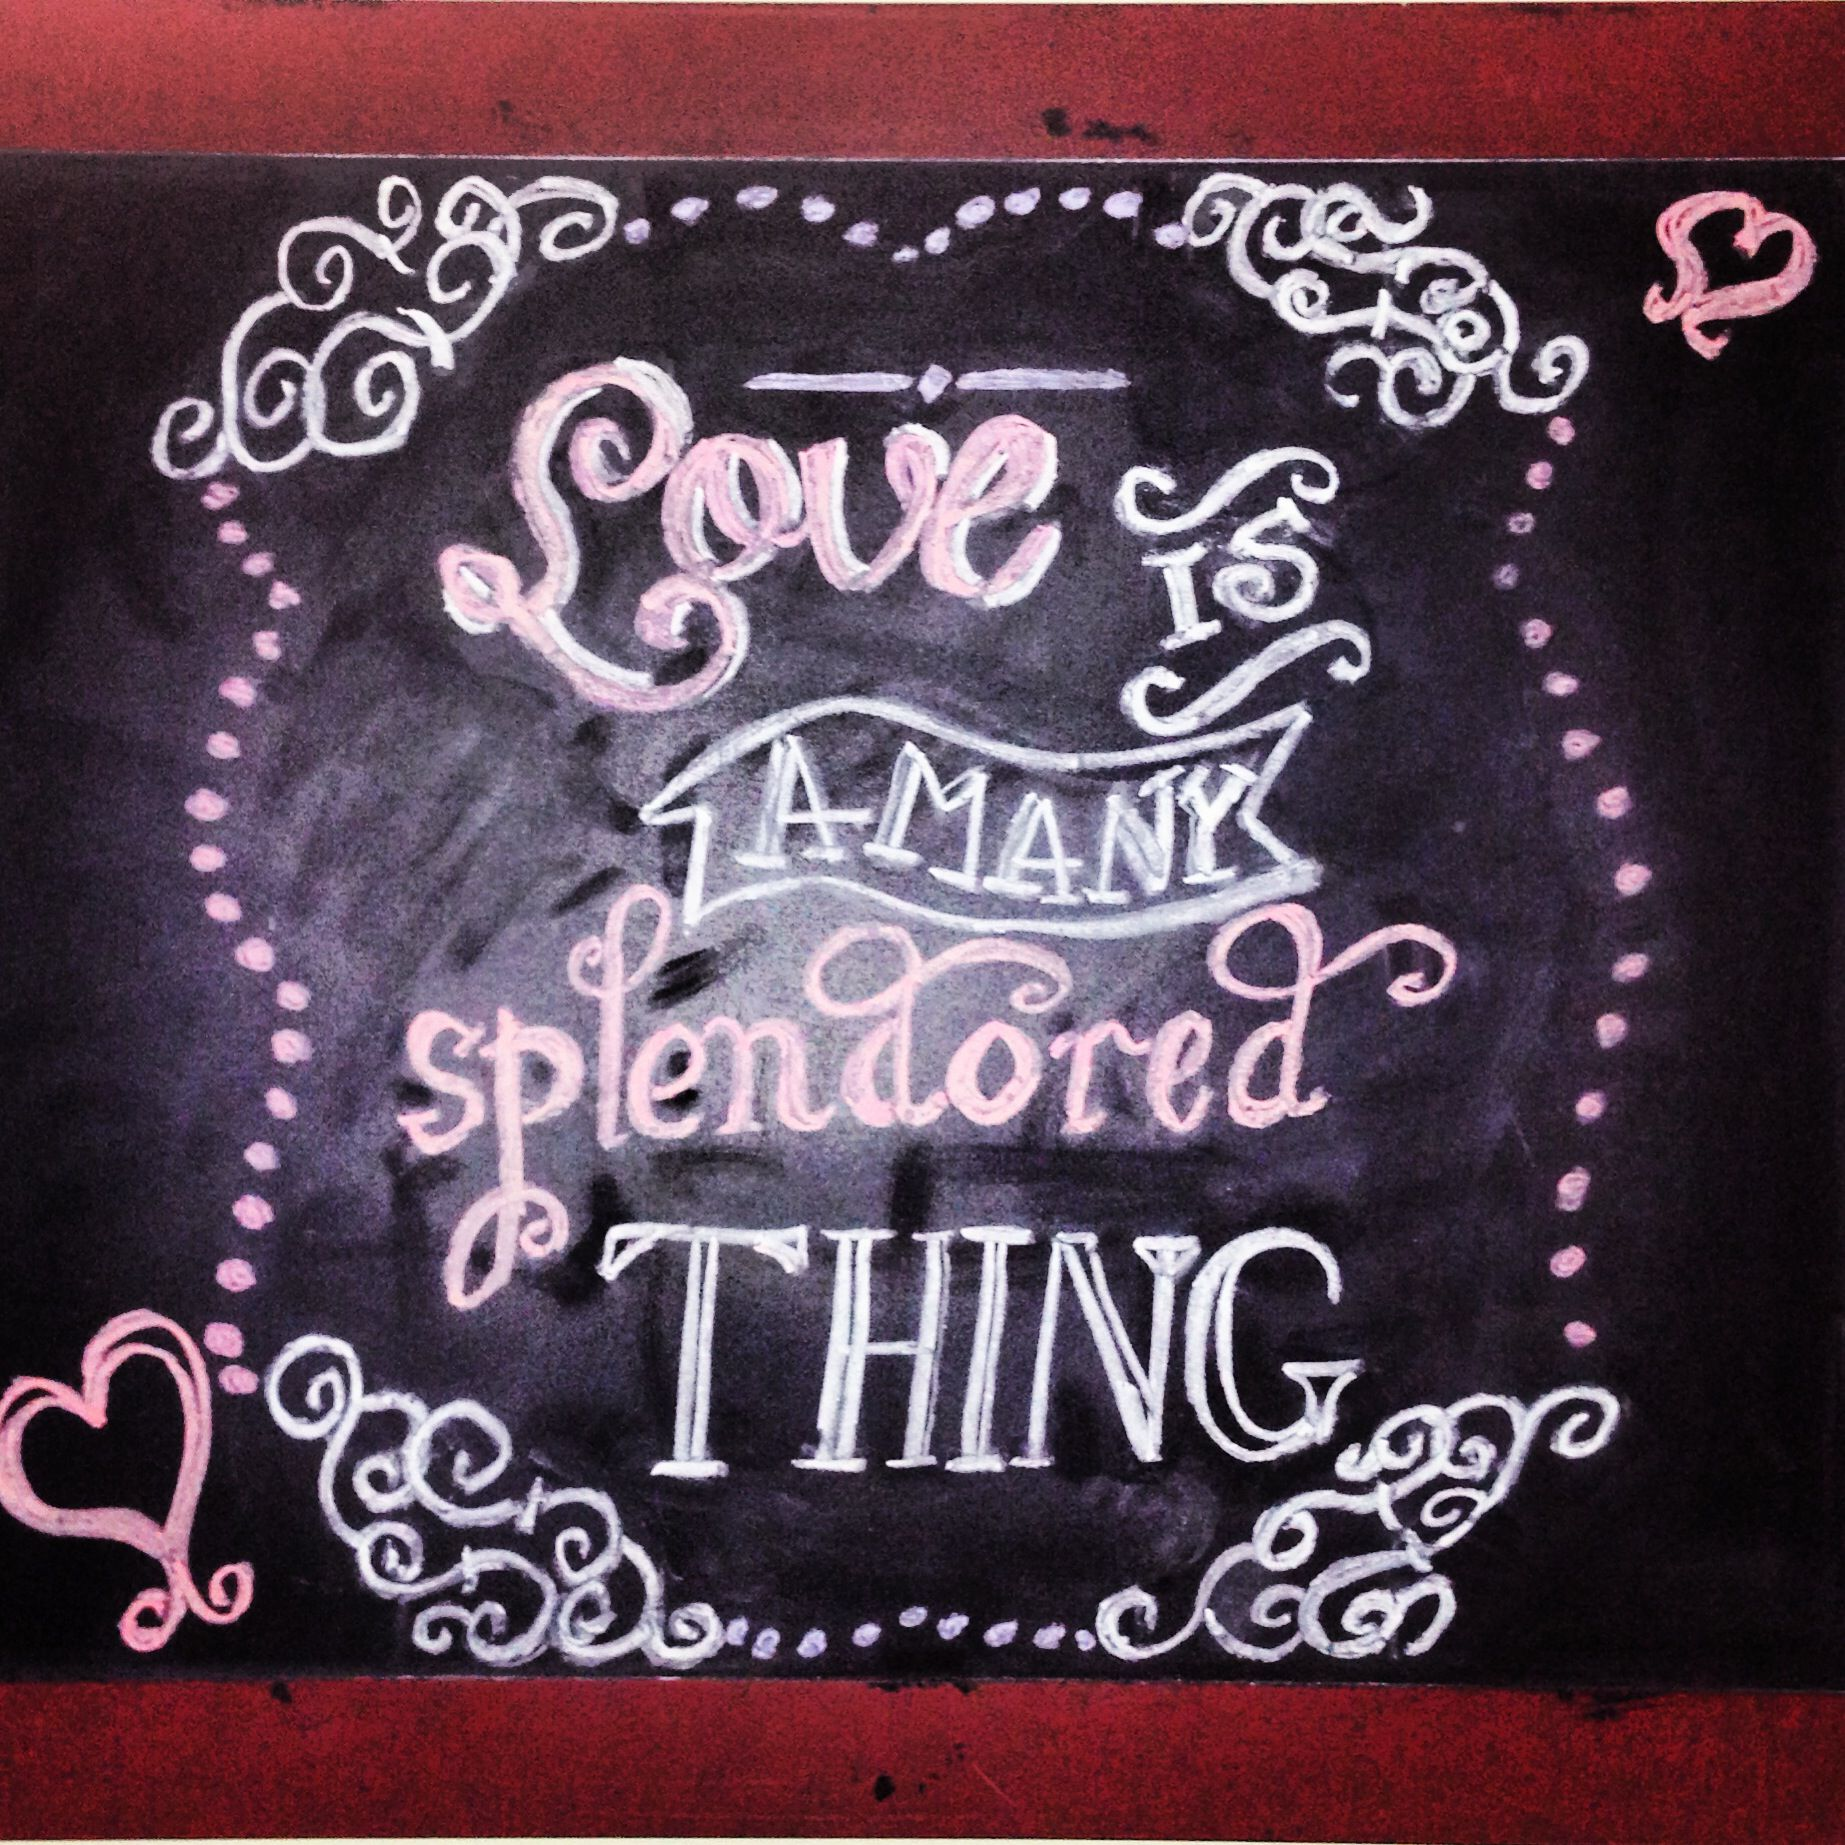 valentines day chalkboard design - Chalkboard Designs Ideas